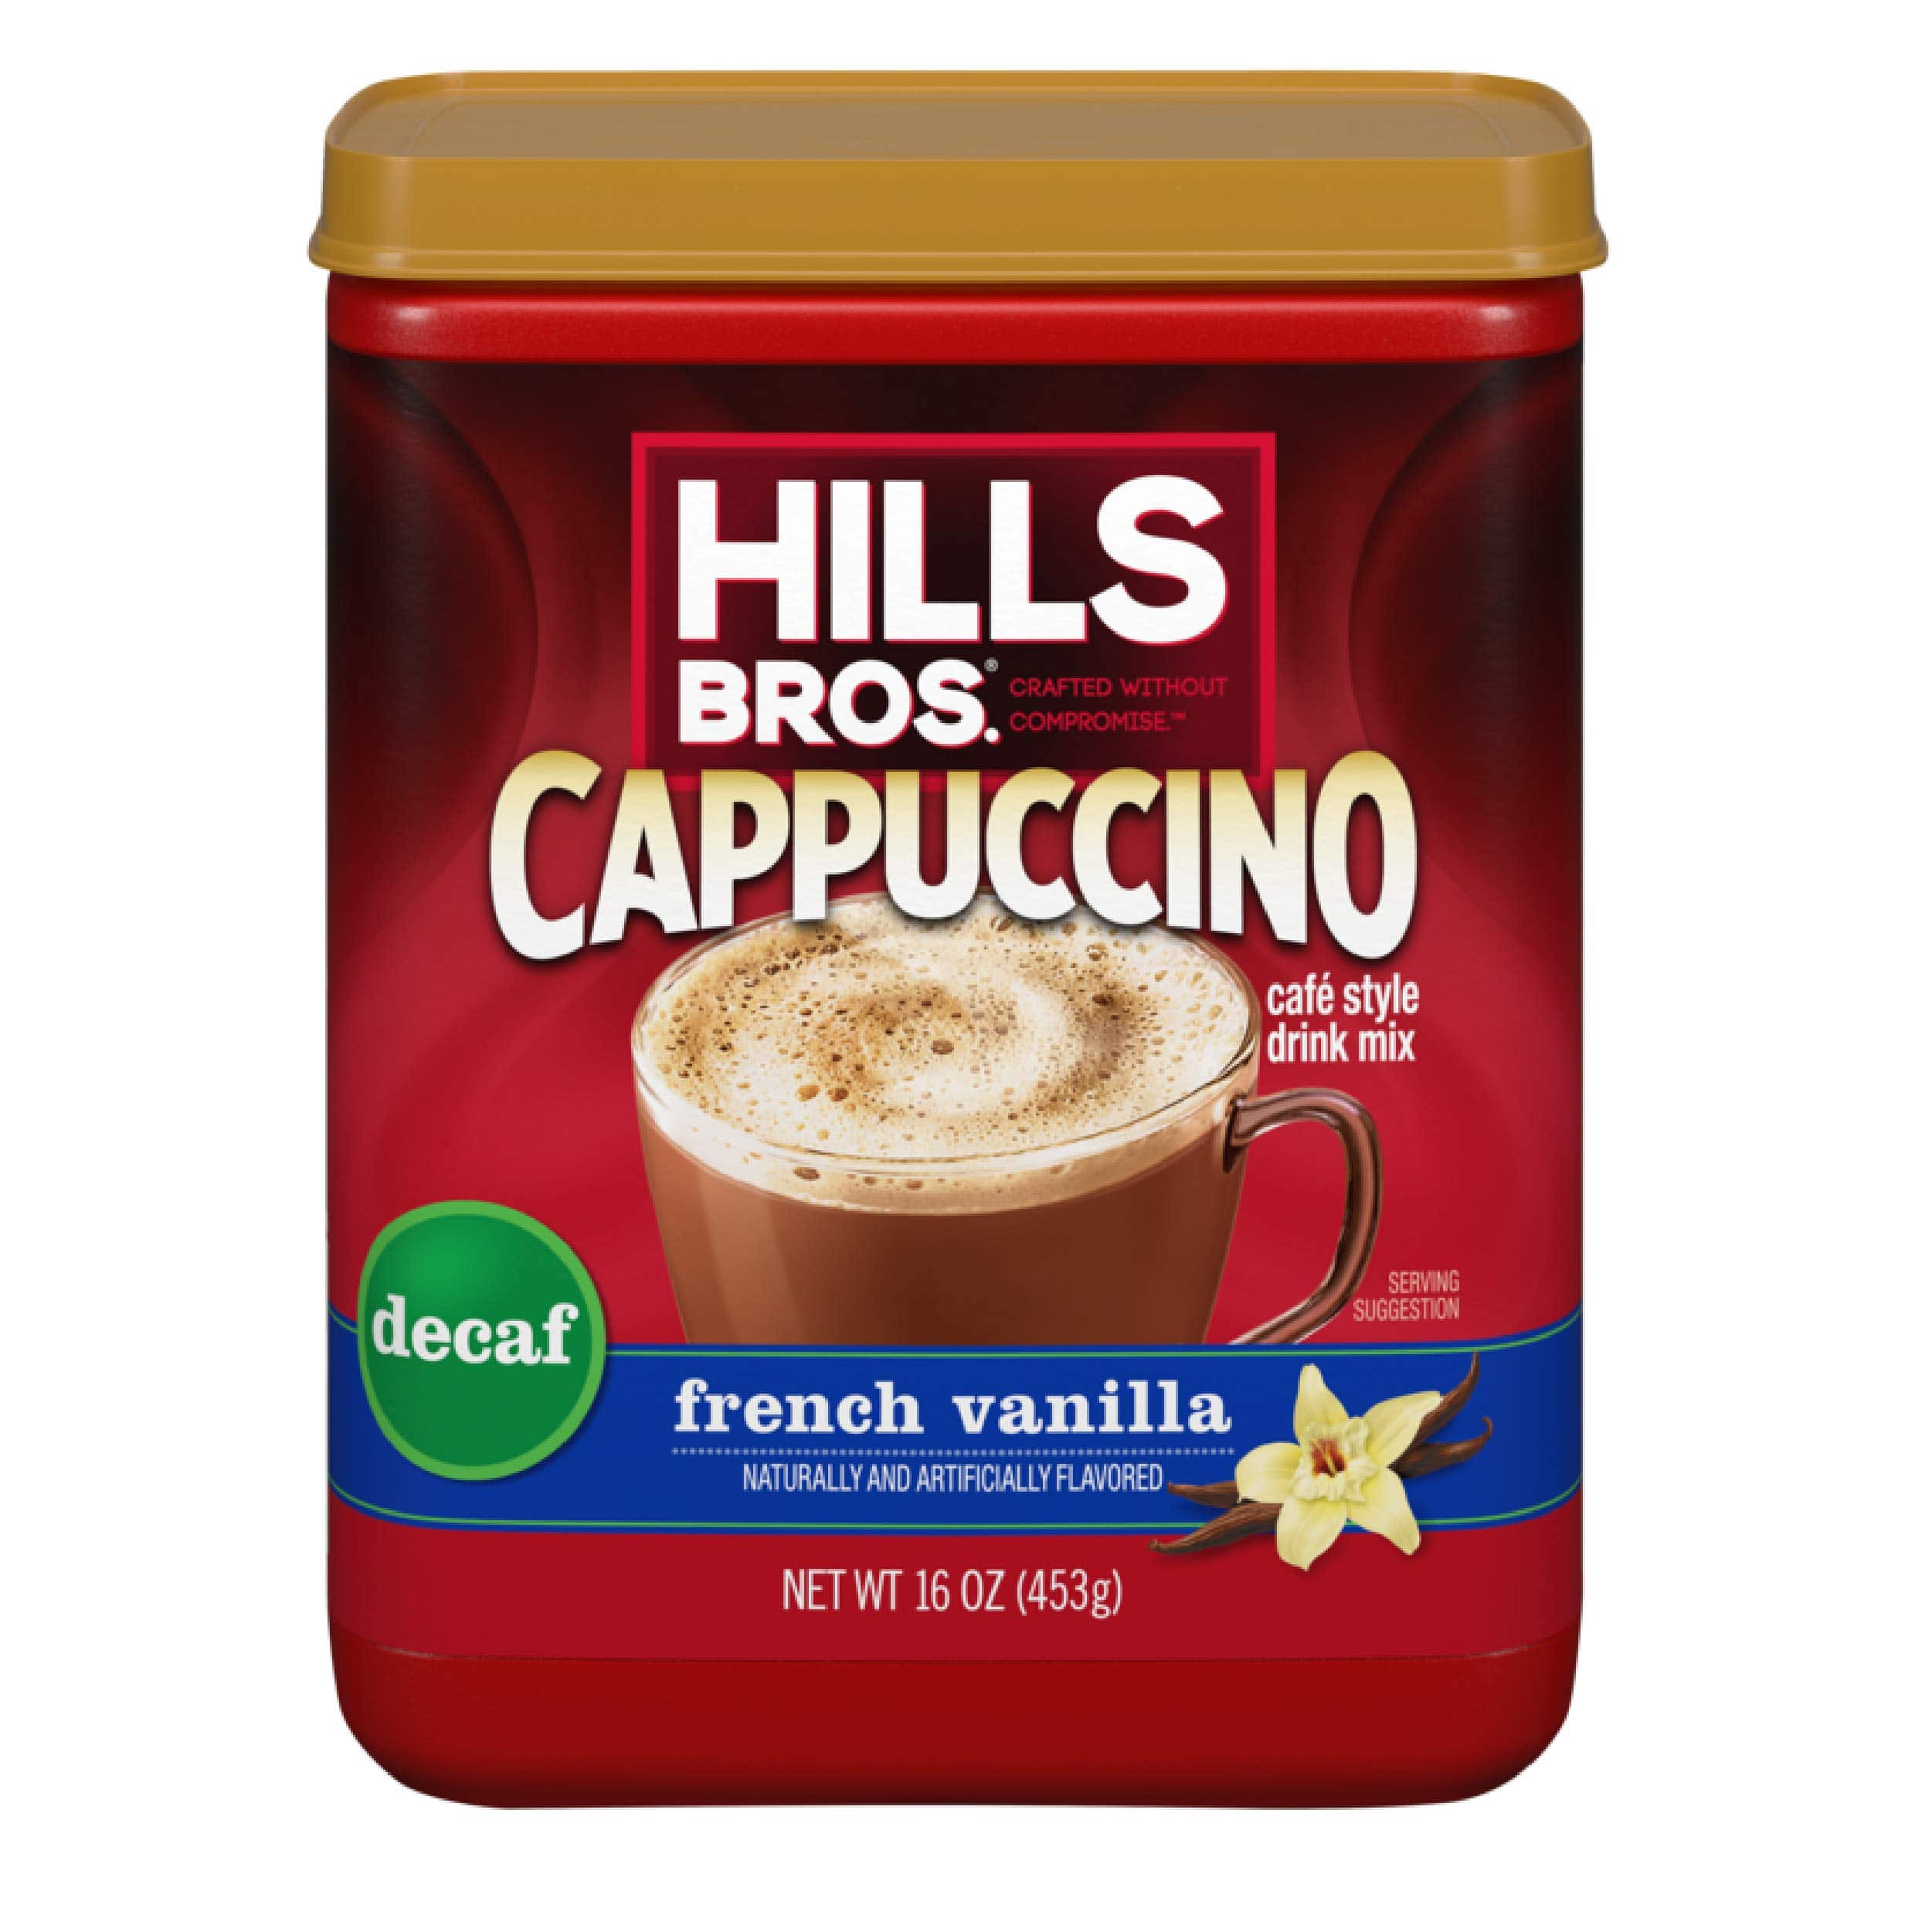 16-Oz Hills Bros. Instant Cappuccino Mix (decaf french vanilla) $2.70 w/ S&S + Free Shipping w/ Prime or on $25+